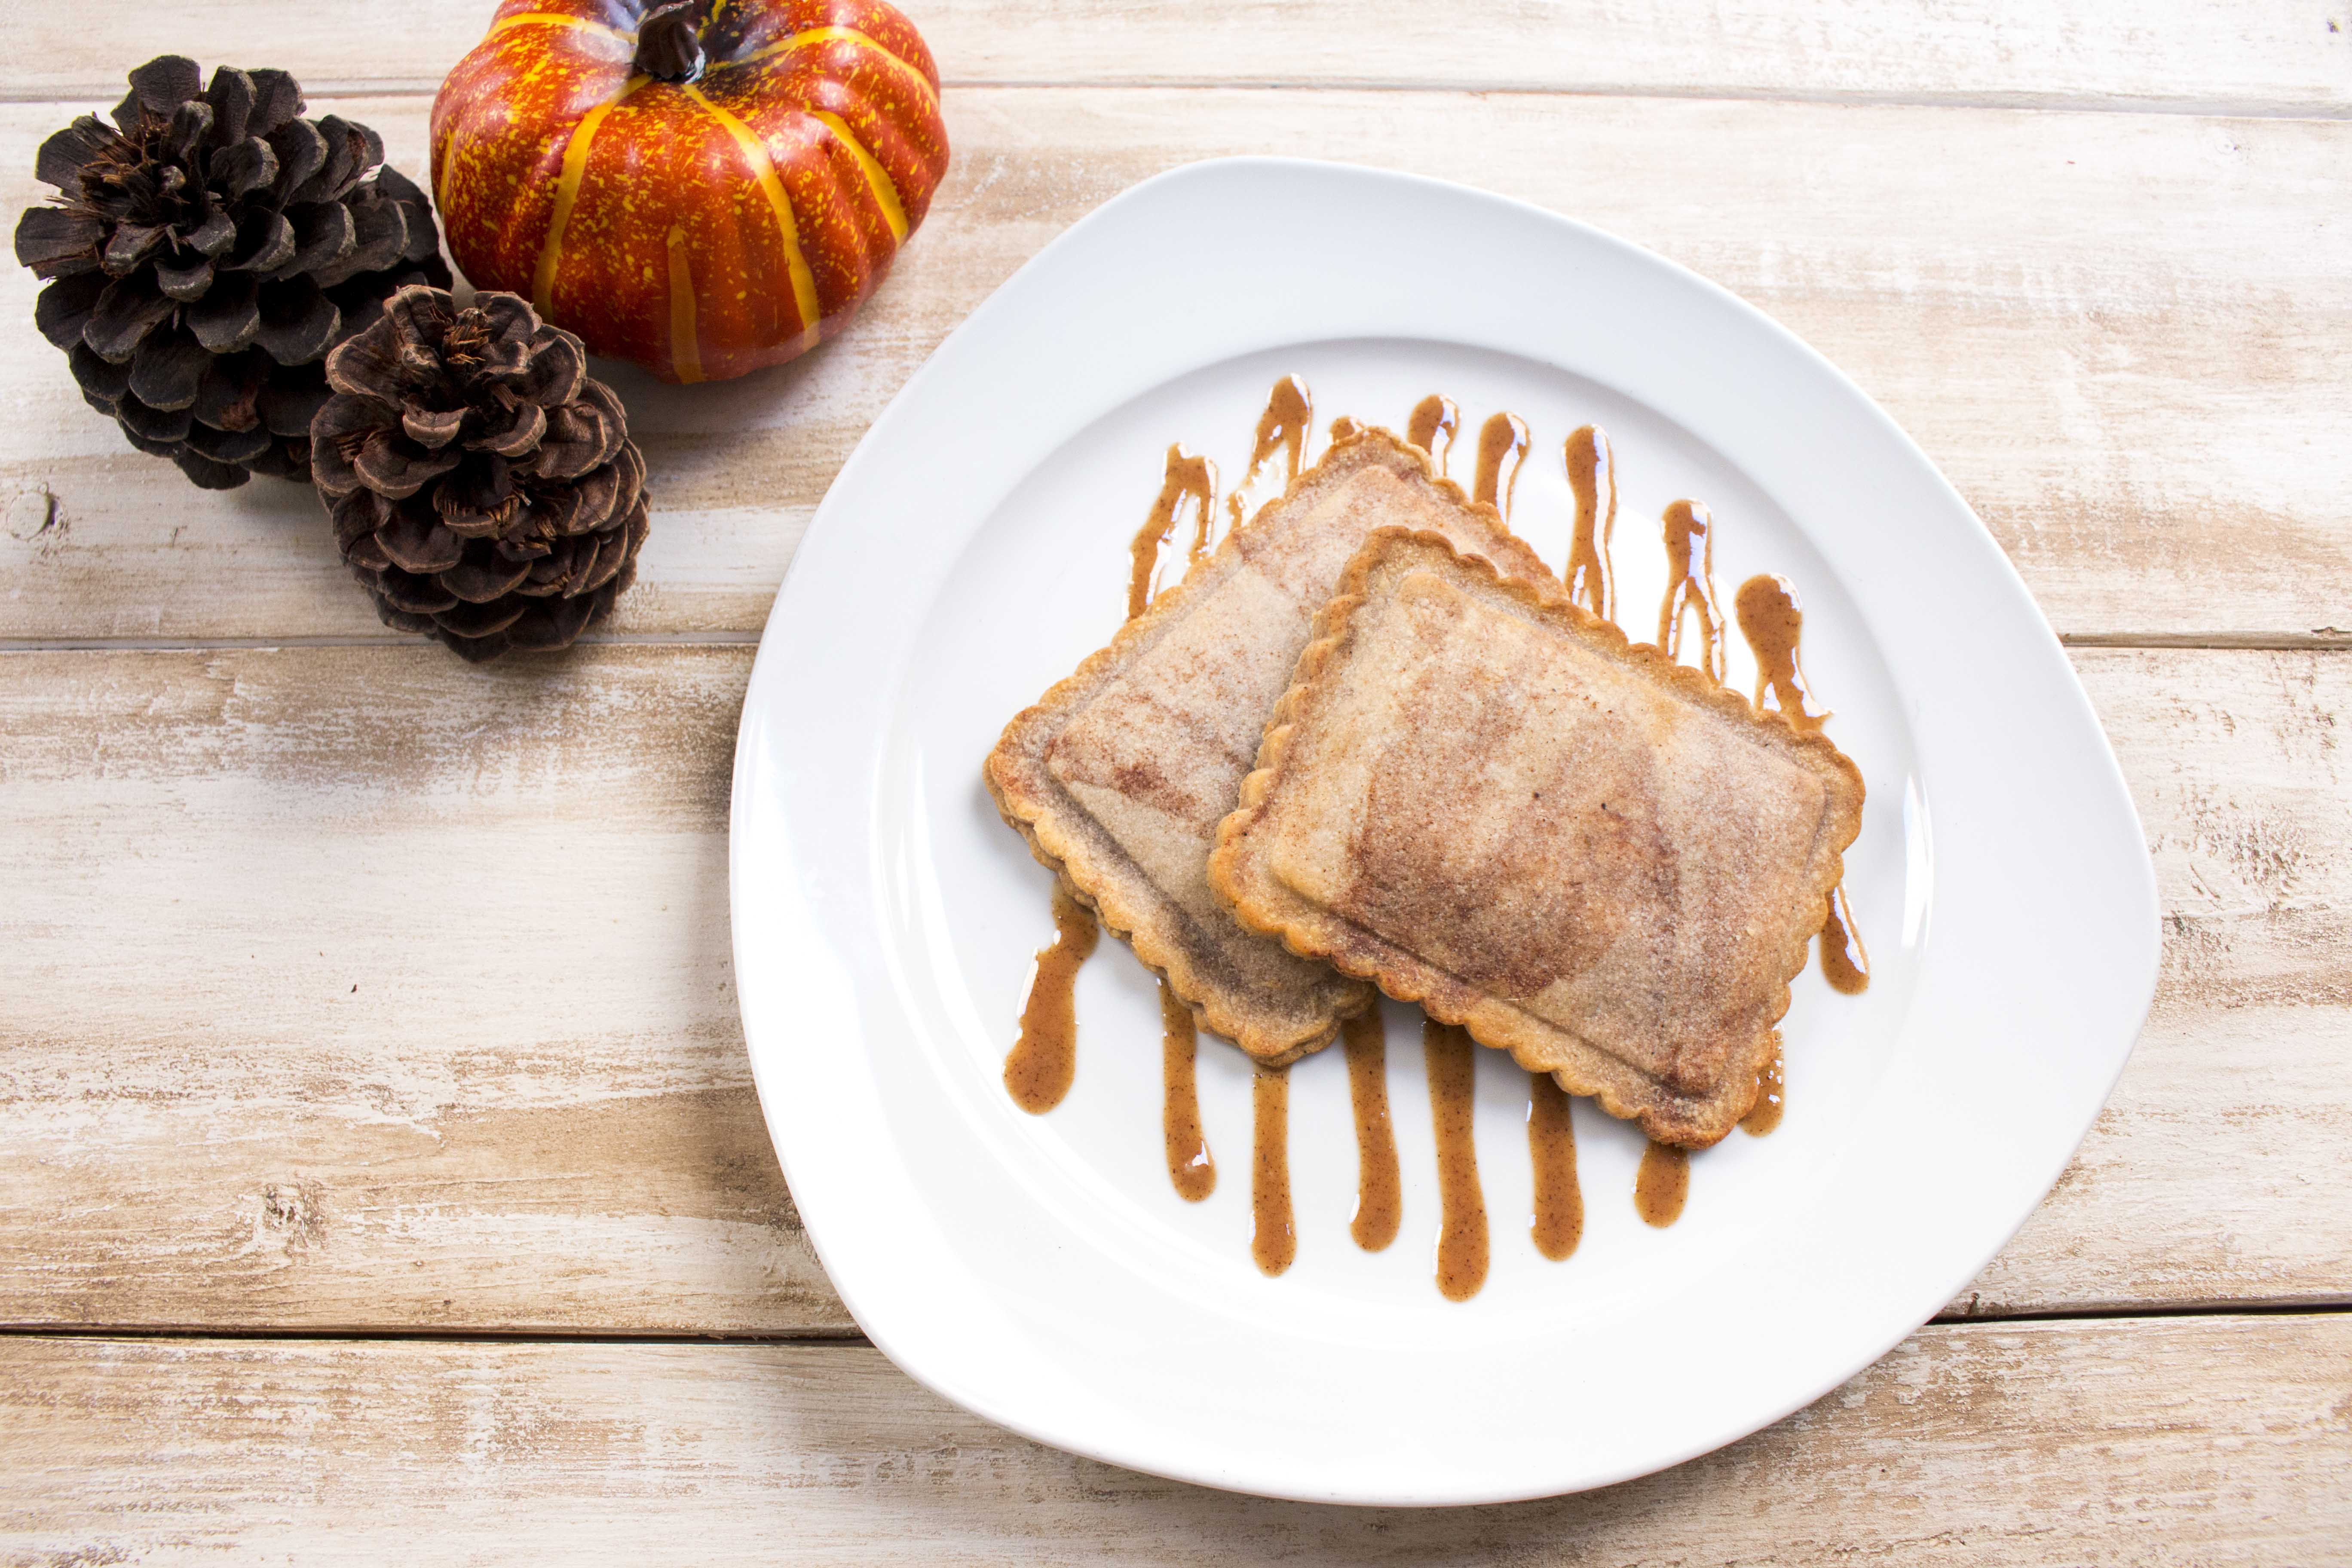 How Do You Want Your Pumpkin Spice Paleo – Tart?